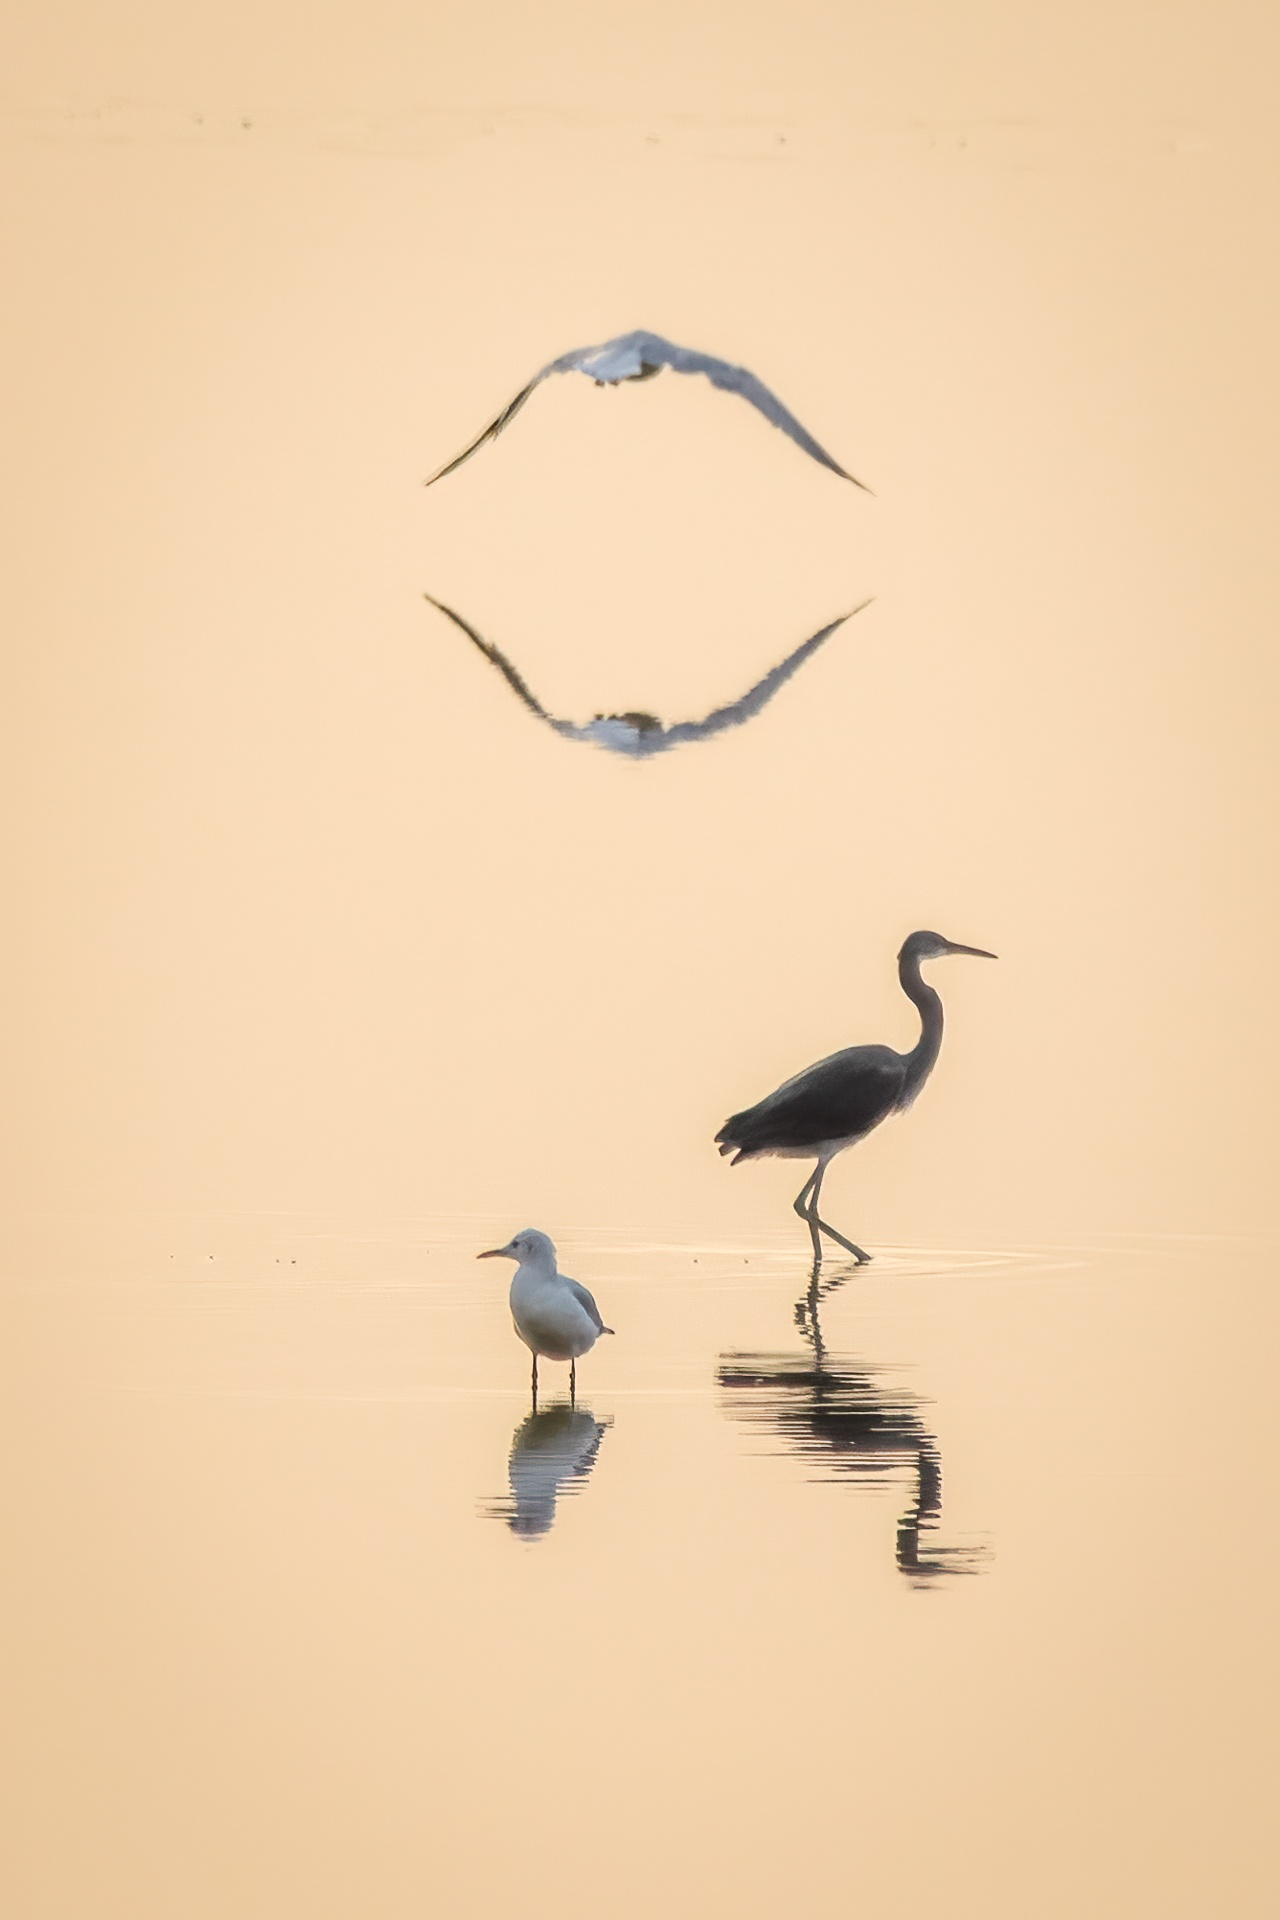 Bird reflections in calm water at sunset